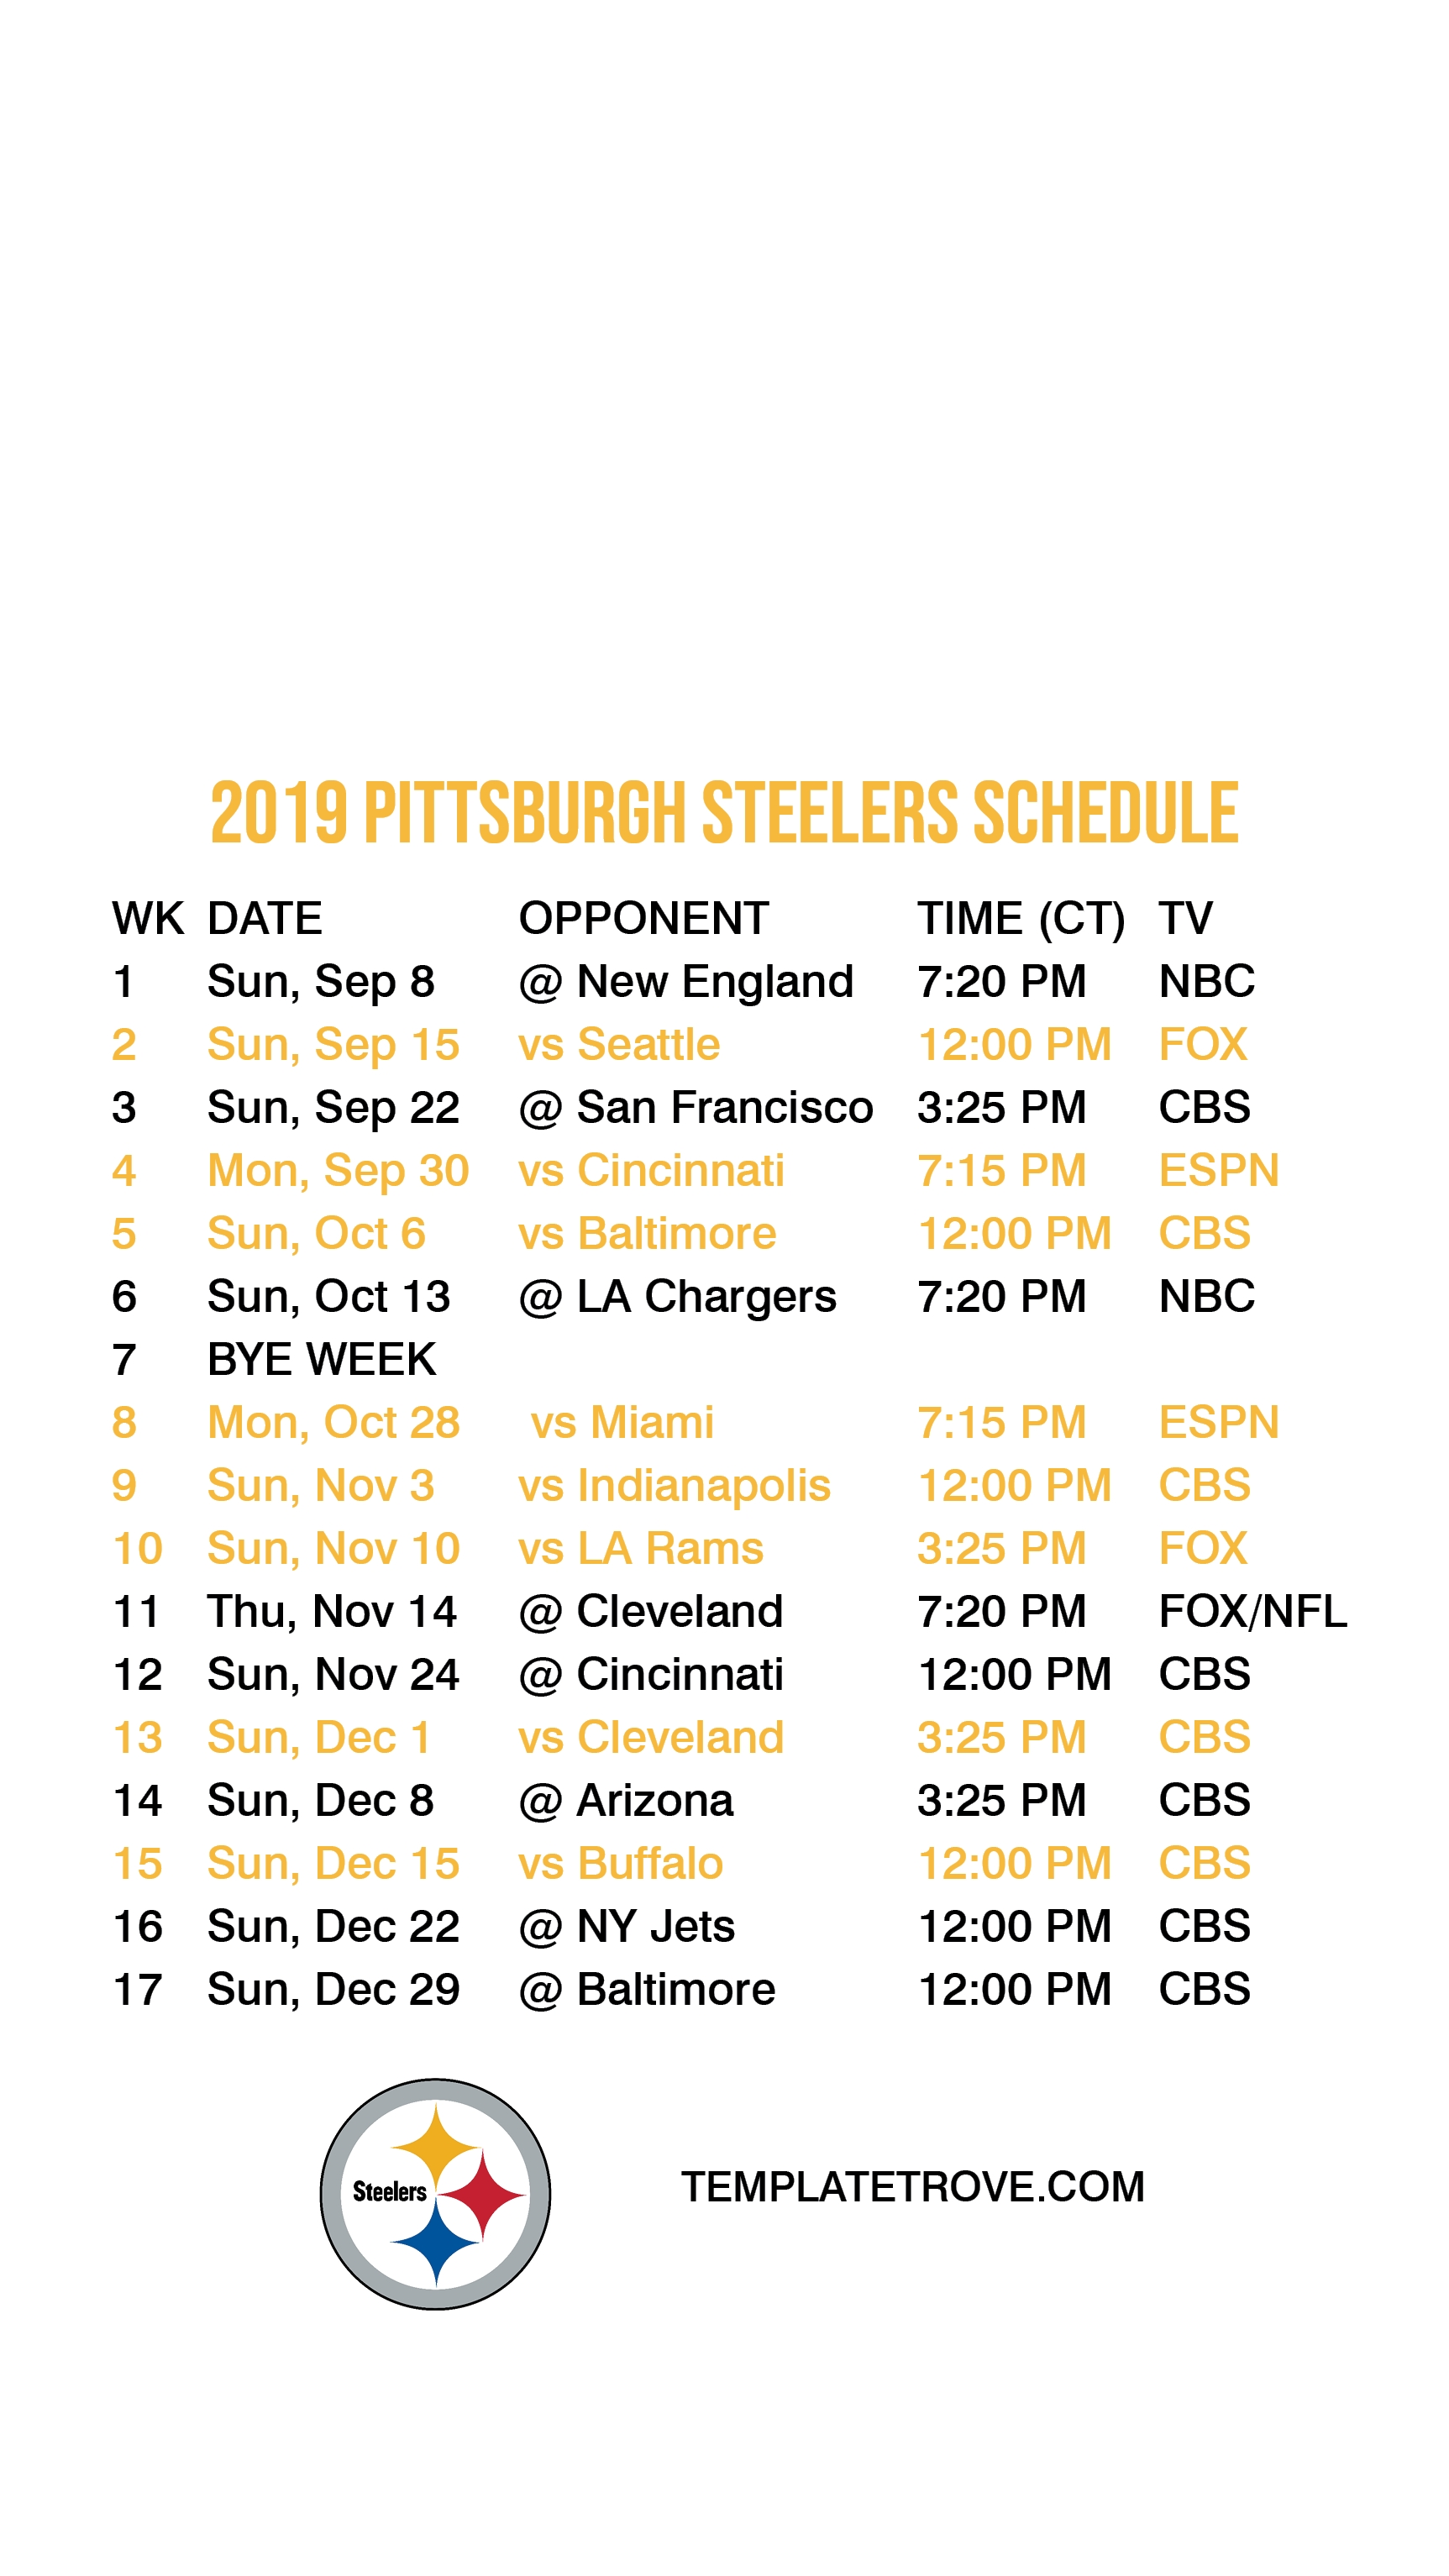 2019-2020 Pittsburgh Steelers Lock Screen Schedule For